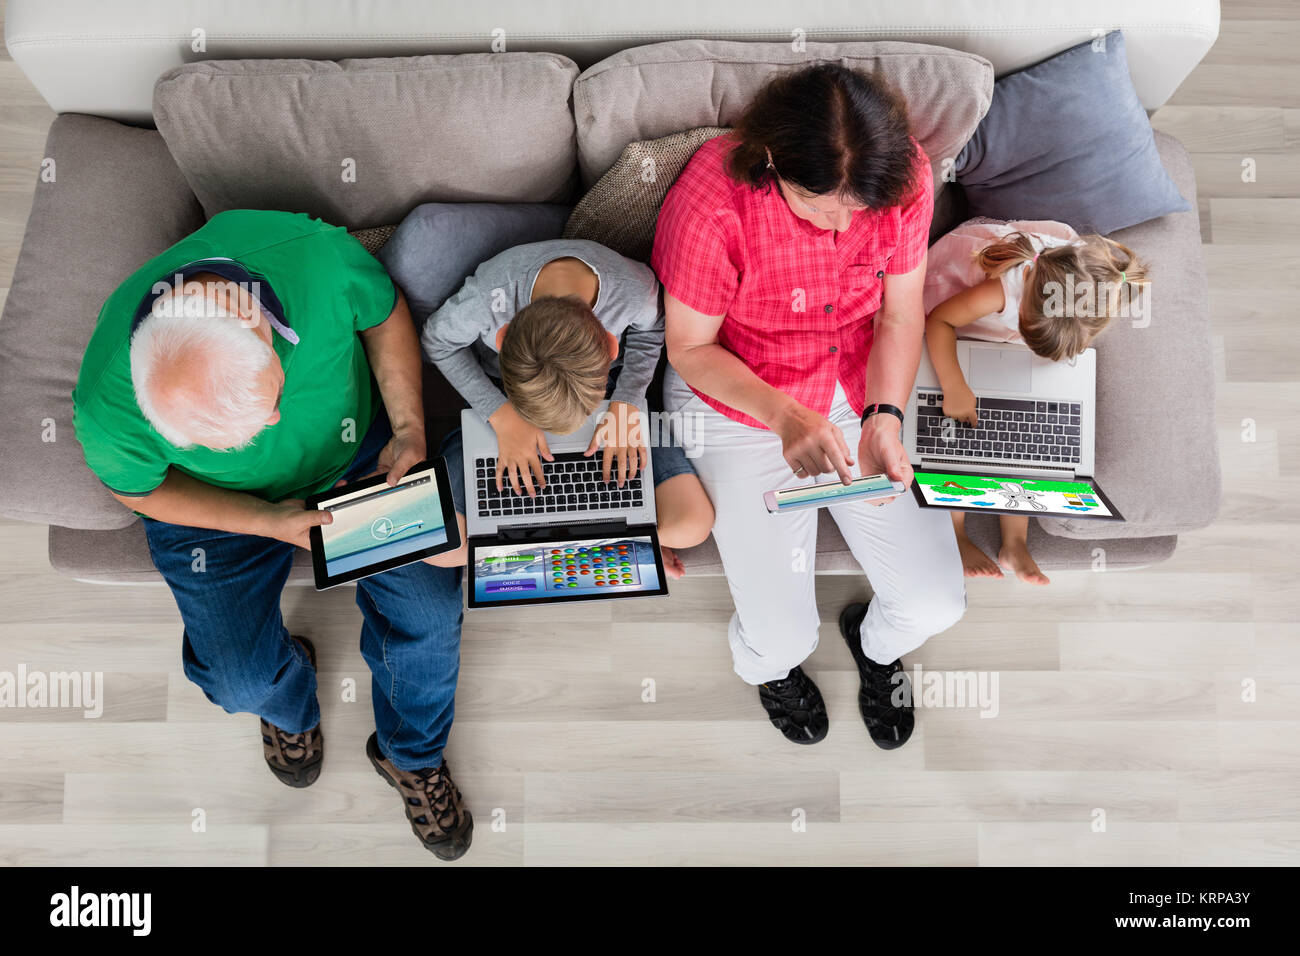 Family With Their Laptop And Digital Tablet At Home - Stock Image